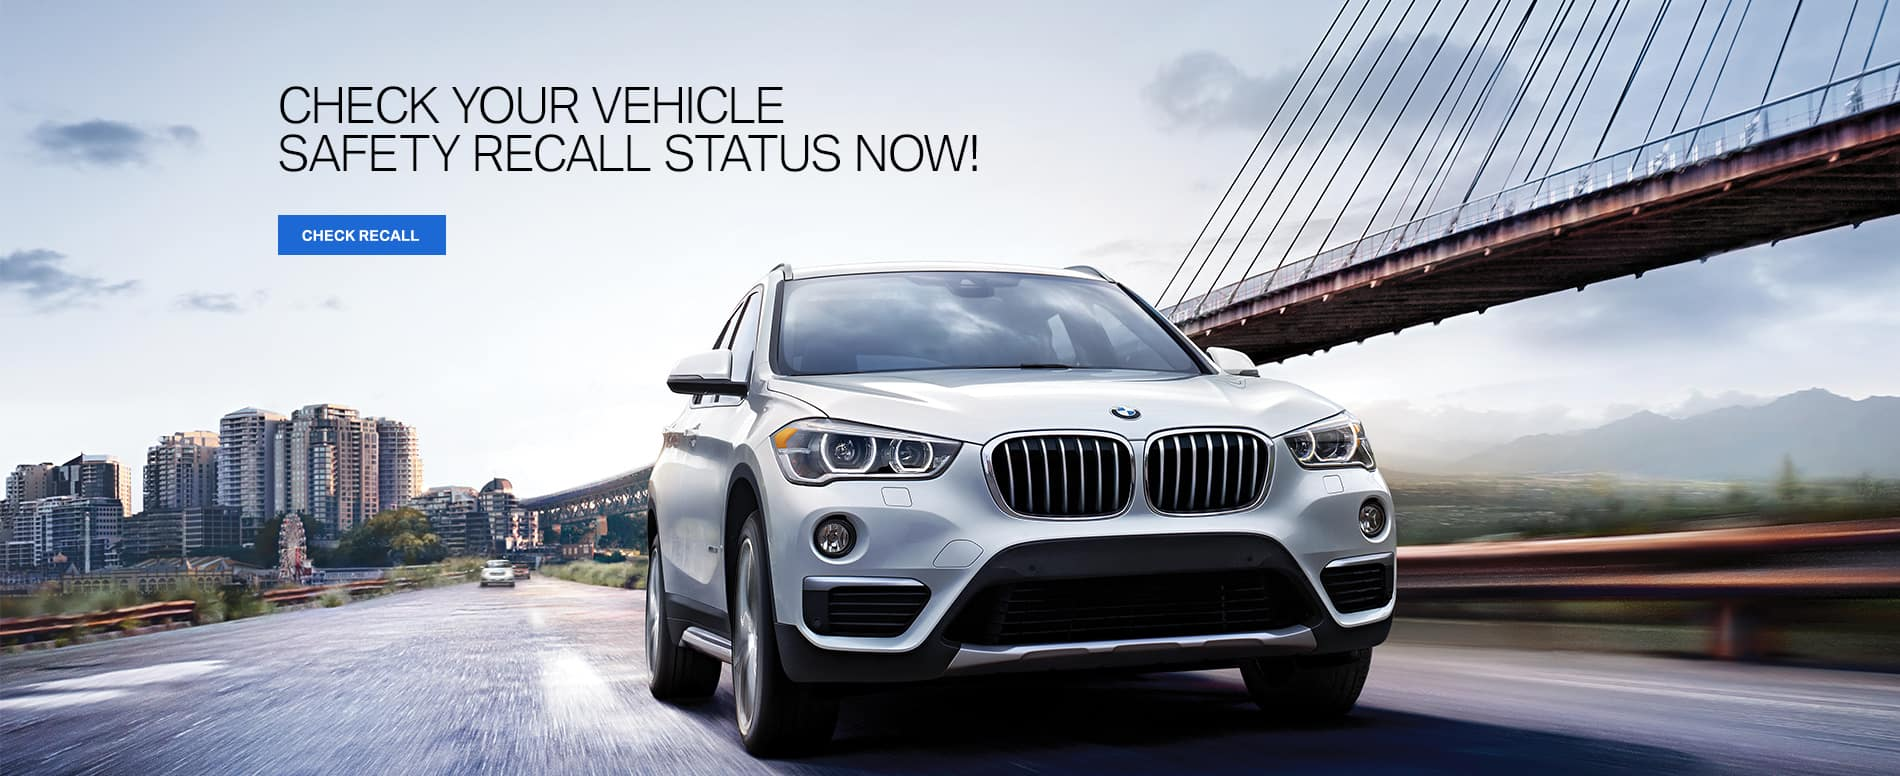 Mauro Motors Bmw Mercedes Benz Dealer In North Haven Ct >> Bmw Of North Haven Bmw Dealer In North Haven Ct